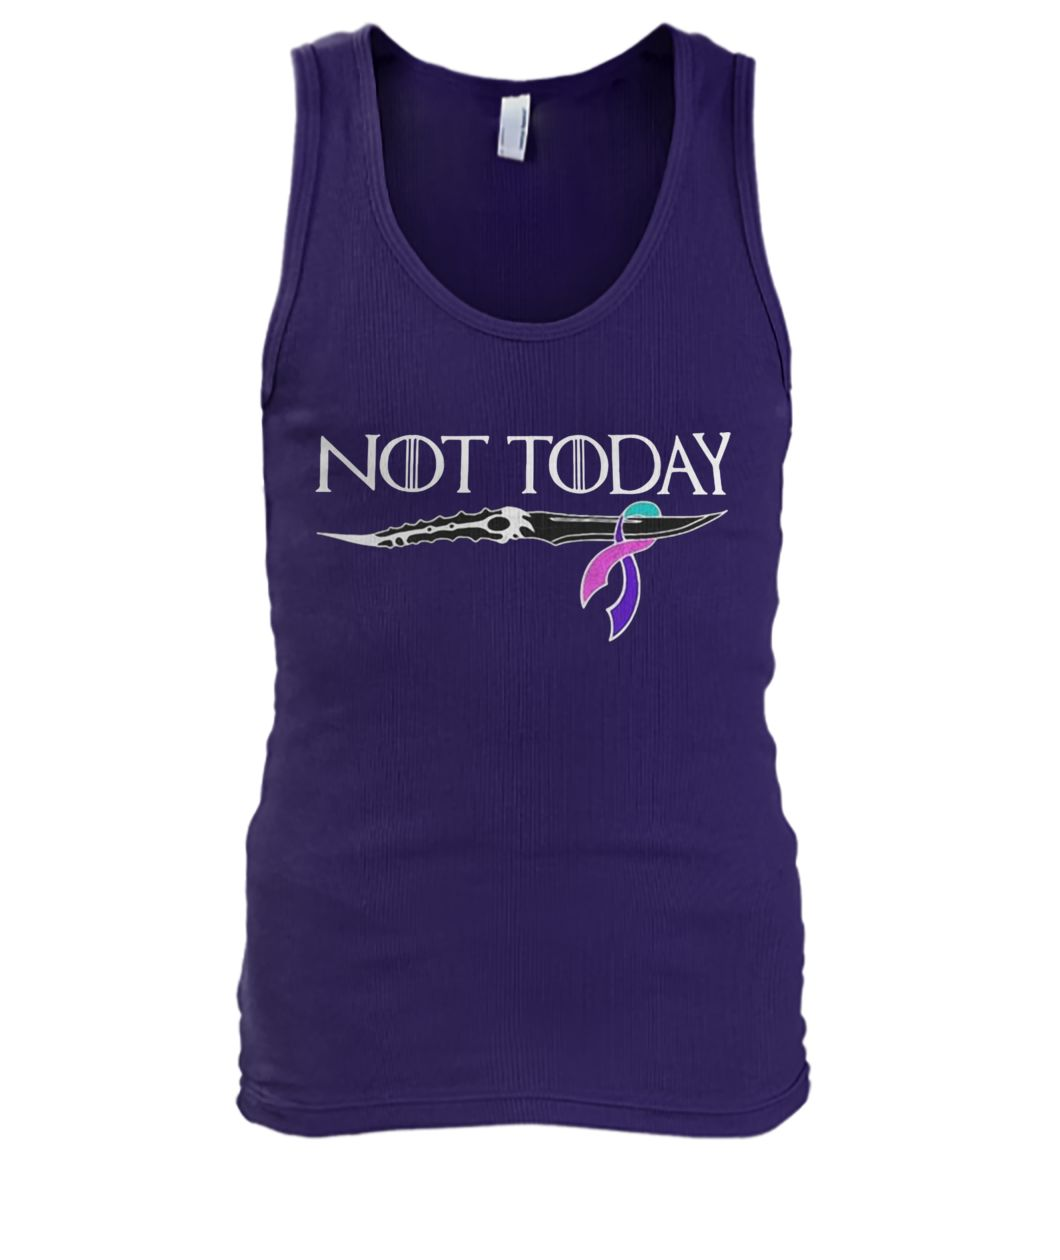 Thyroid cancer not today game of thrones men's tank top